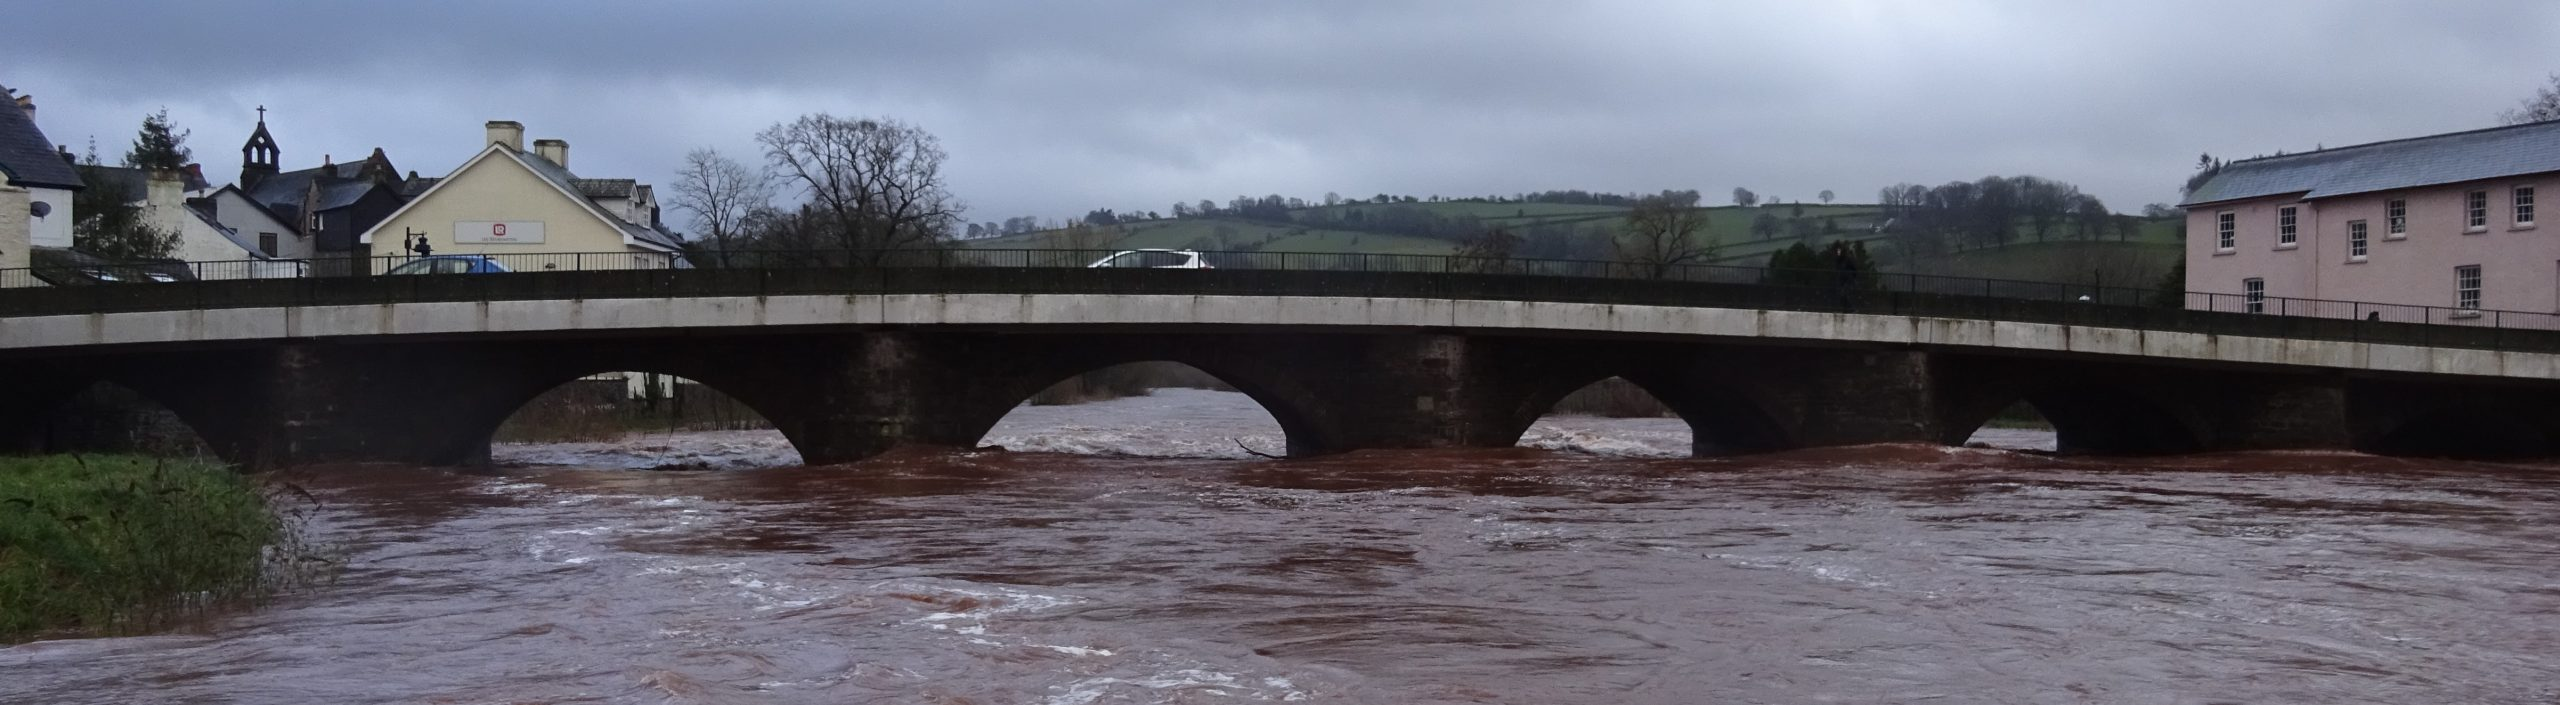 bridge spanning a flooded river